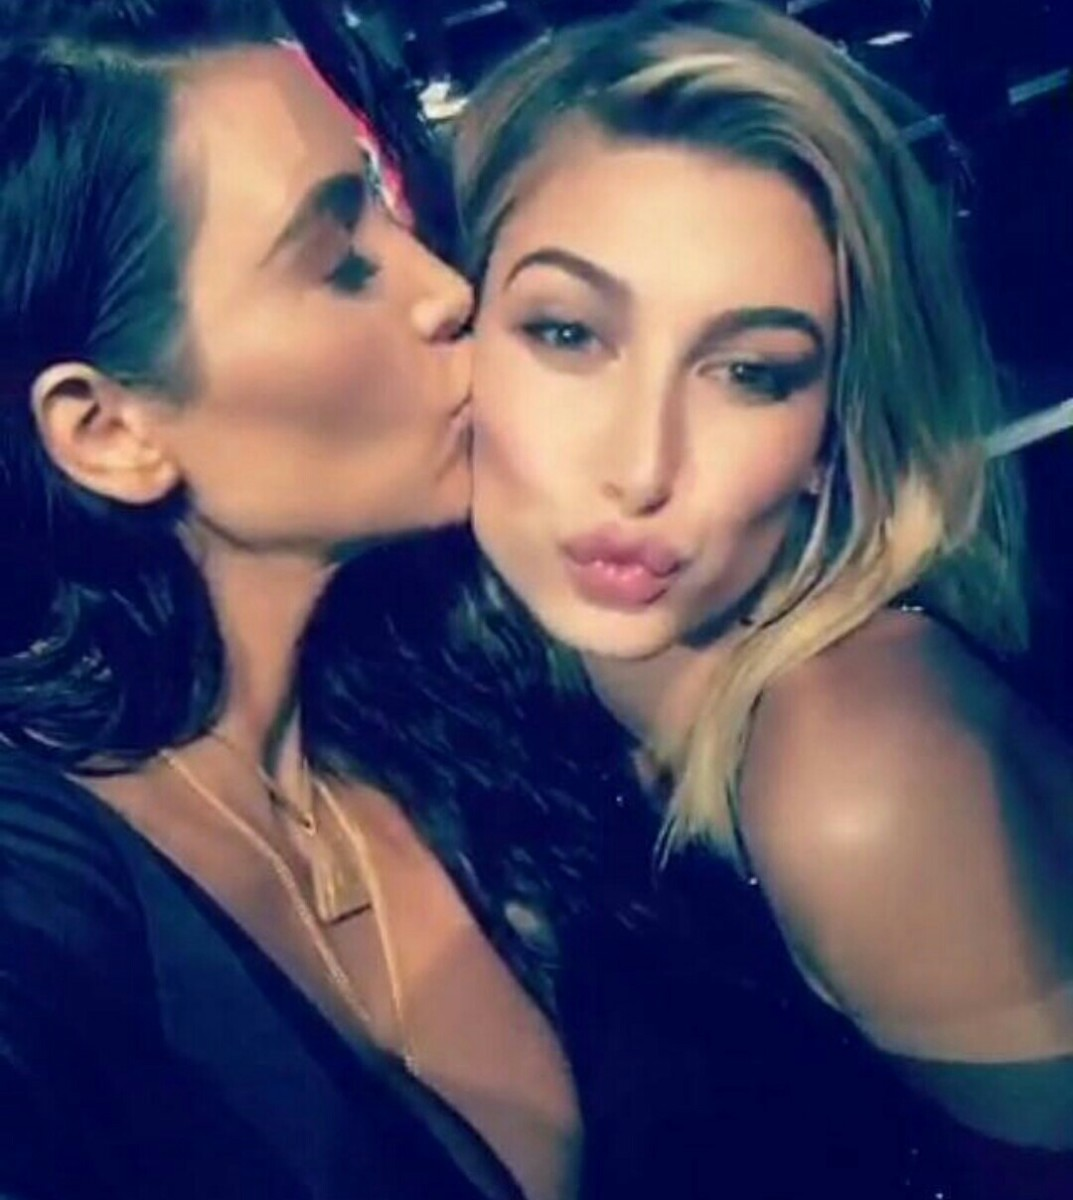 Kim Kardashian and Hailey Baldwin enjoy the VMAs together.